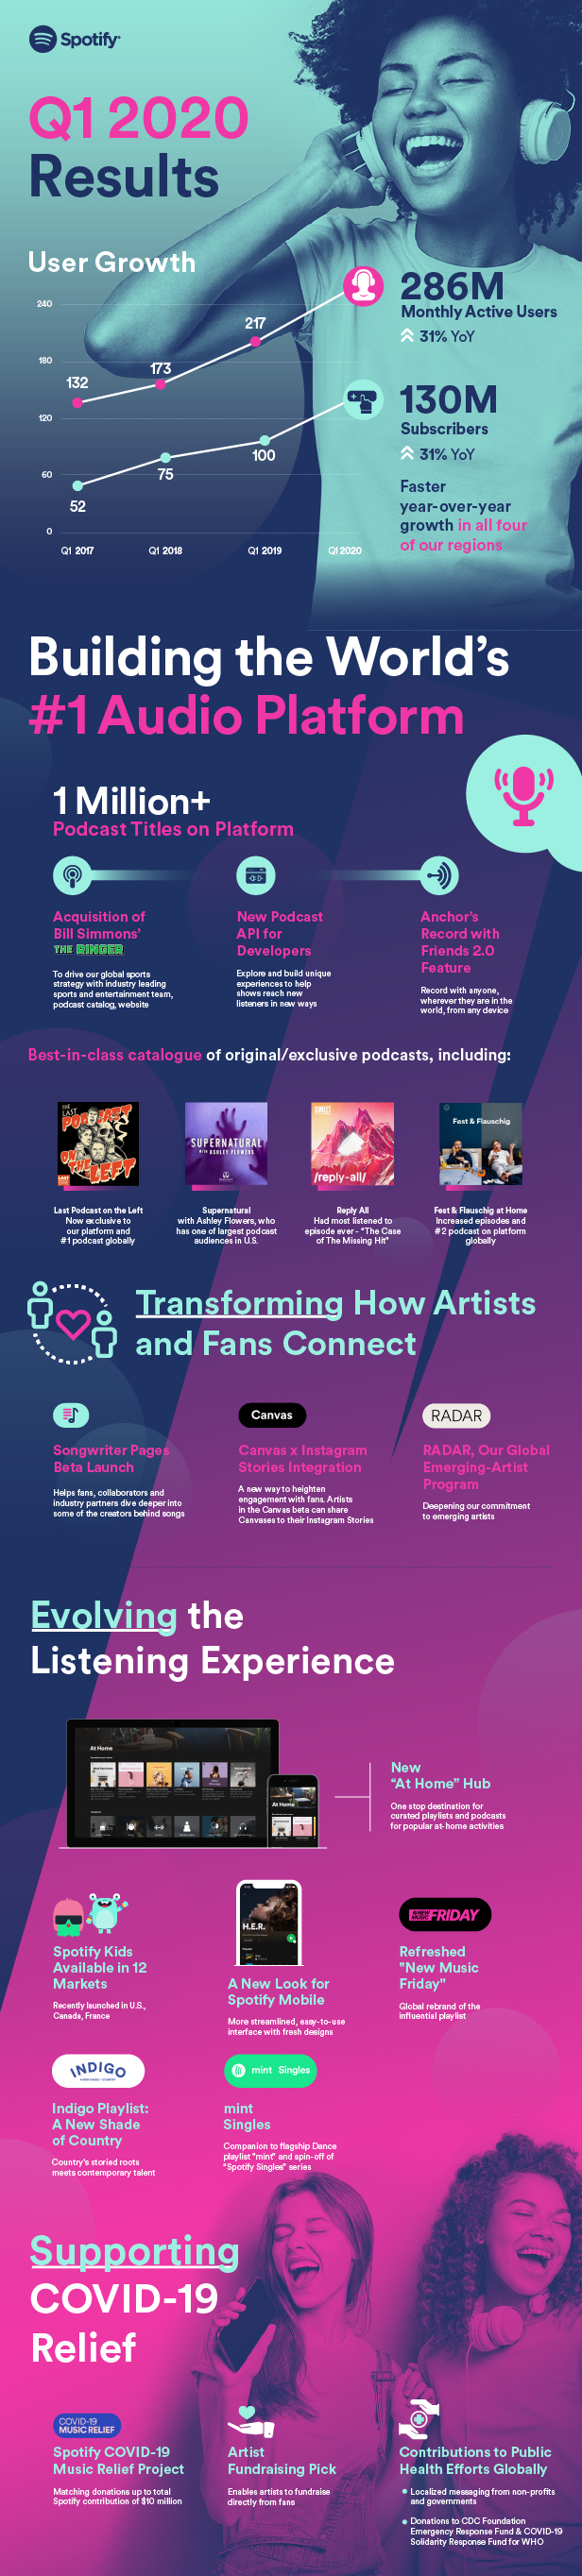 Spotify Earnings Infographic Q1 2020.jpg